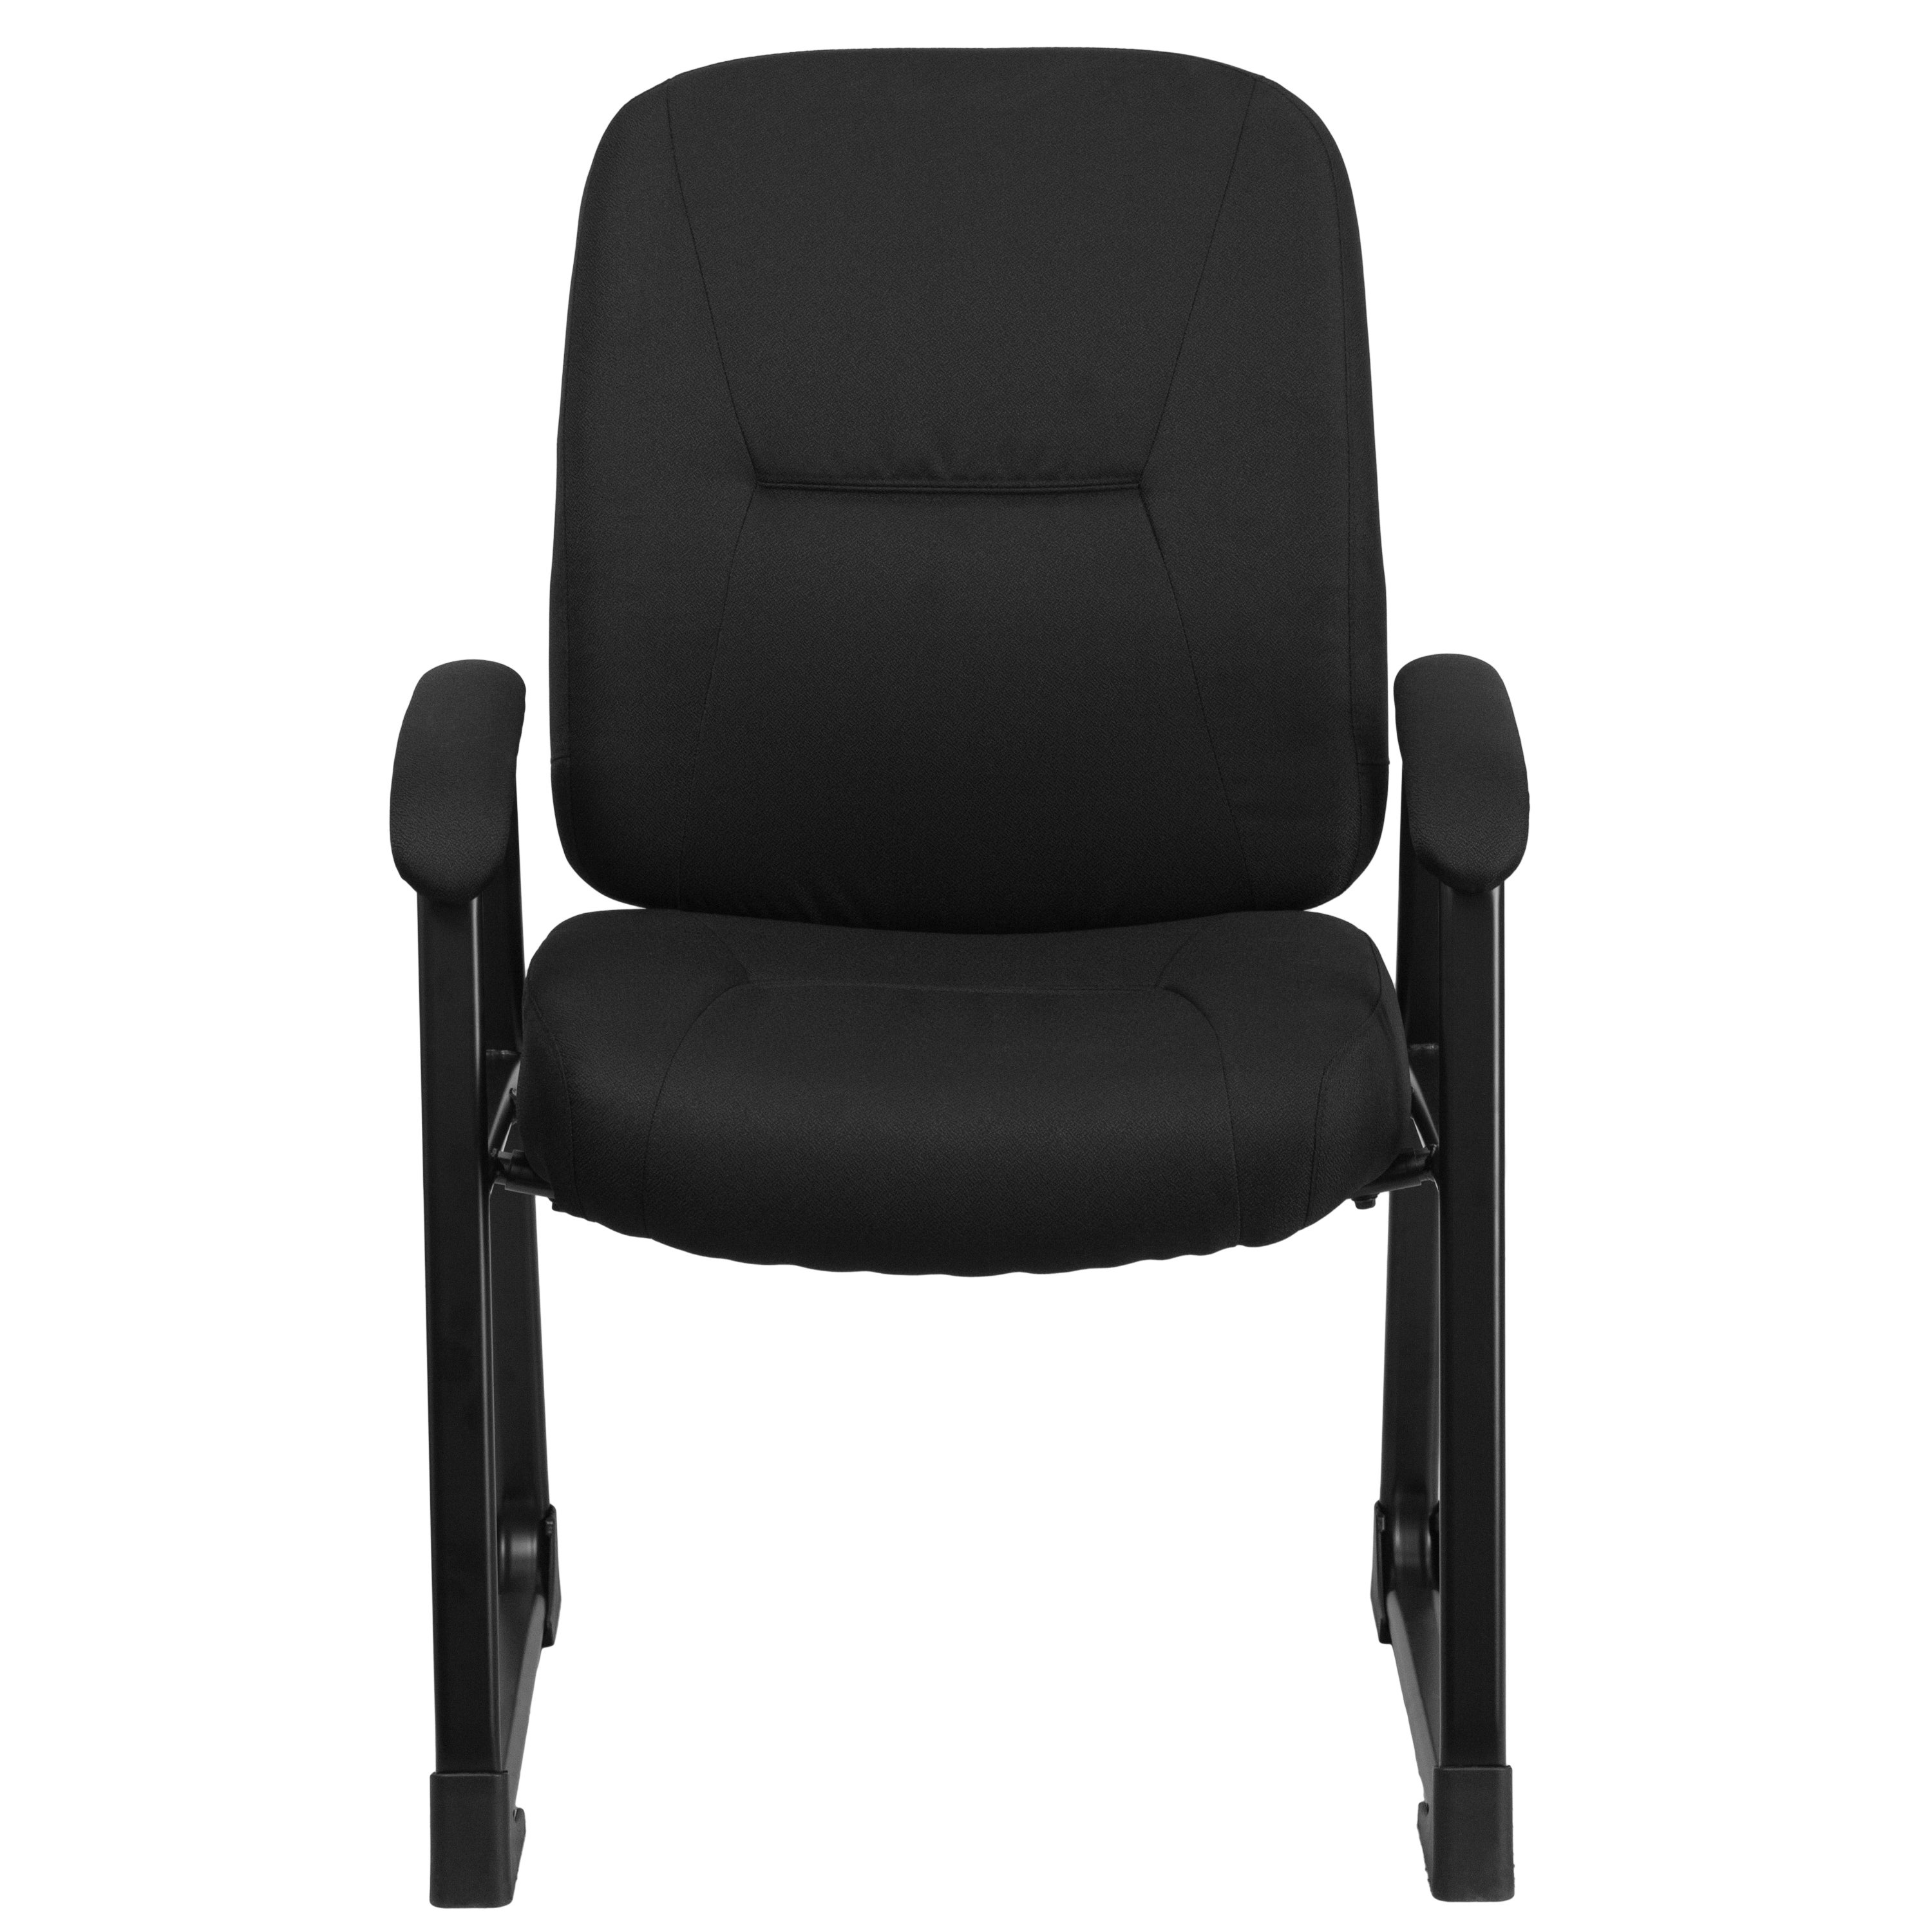 Shop Maral Big and Tall Black Fabric Office Visitor Reception Chair ...